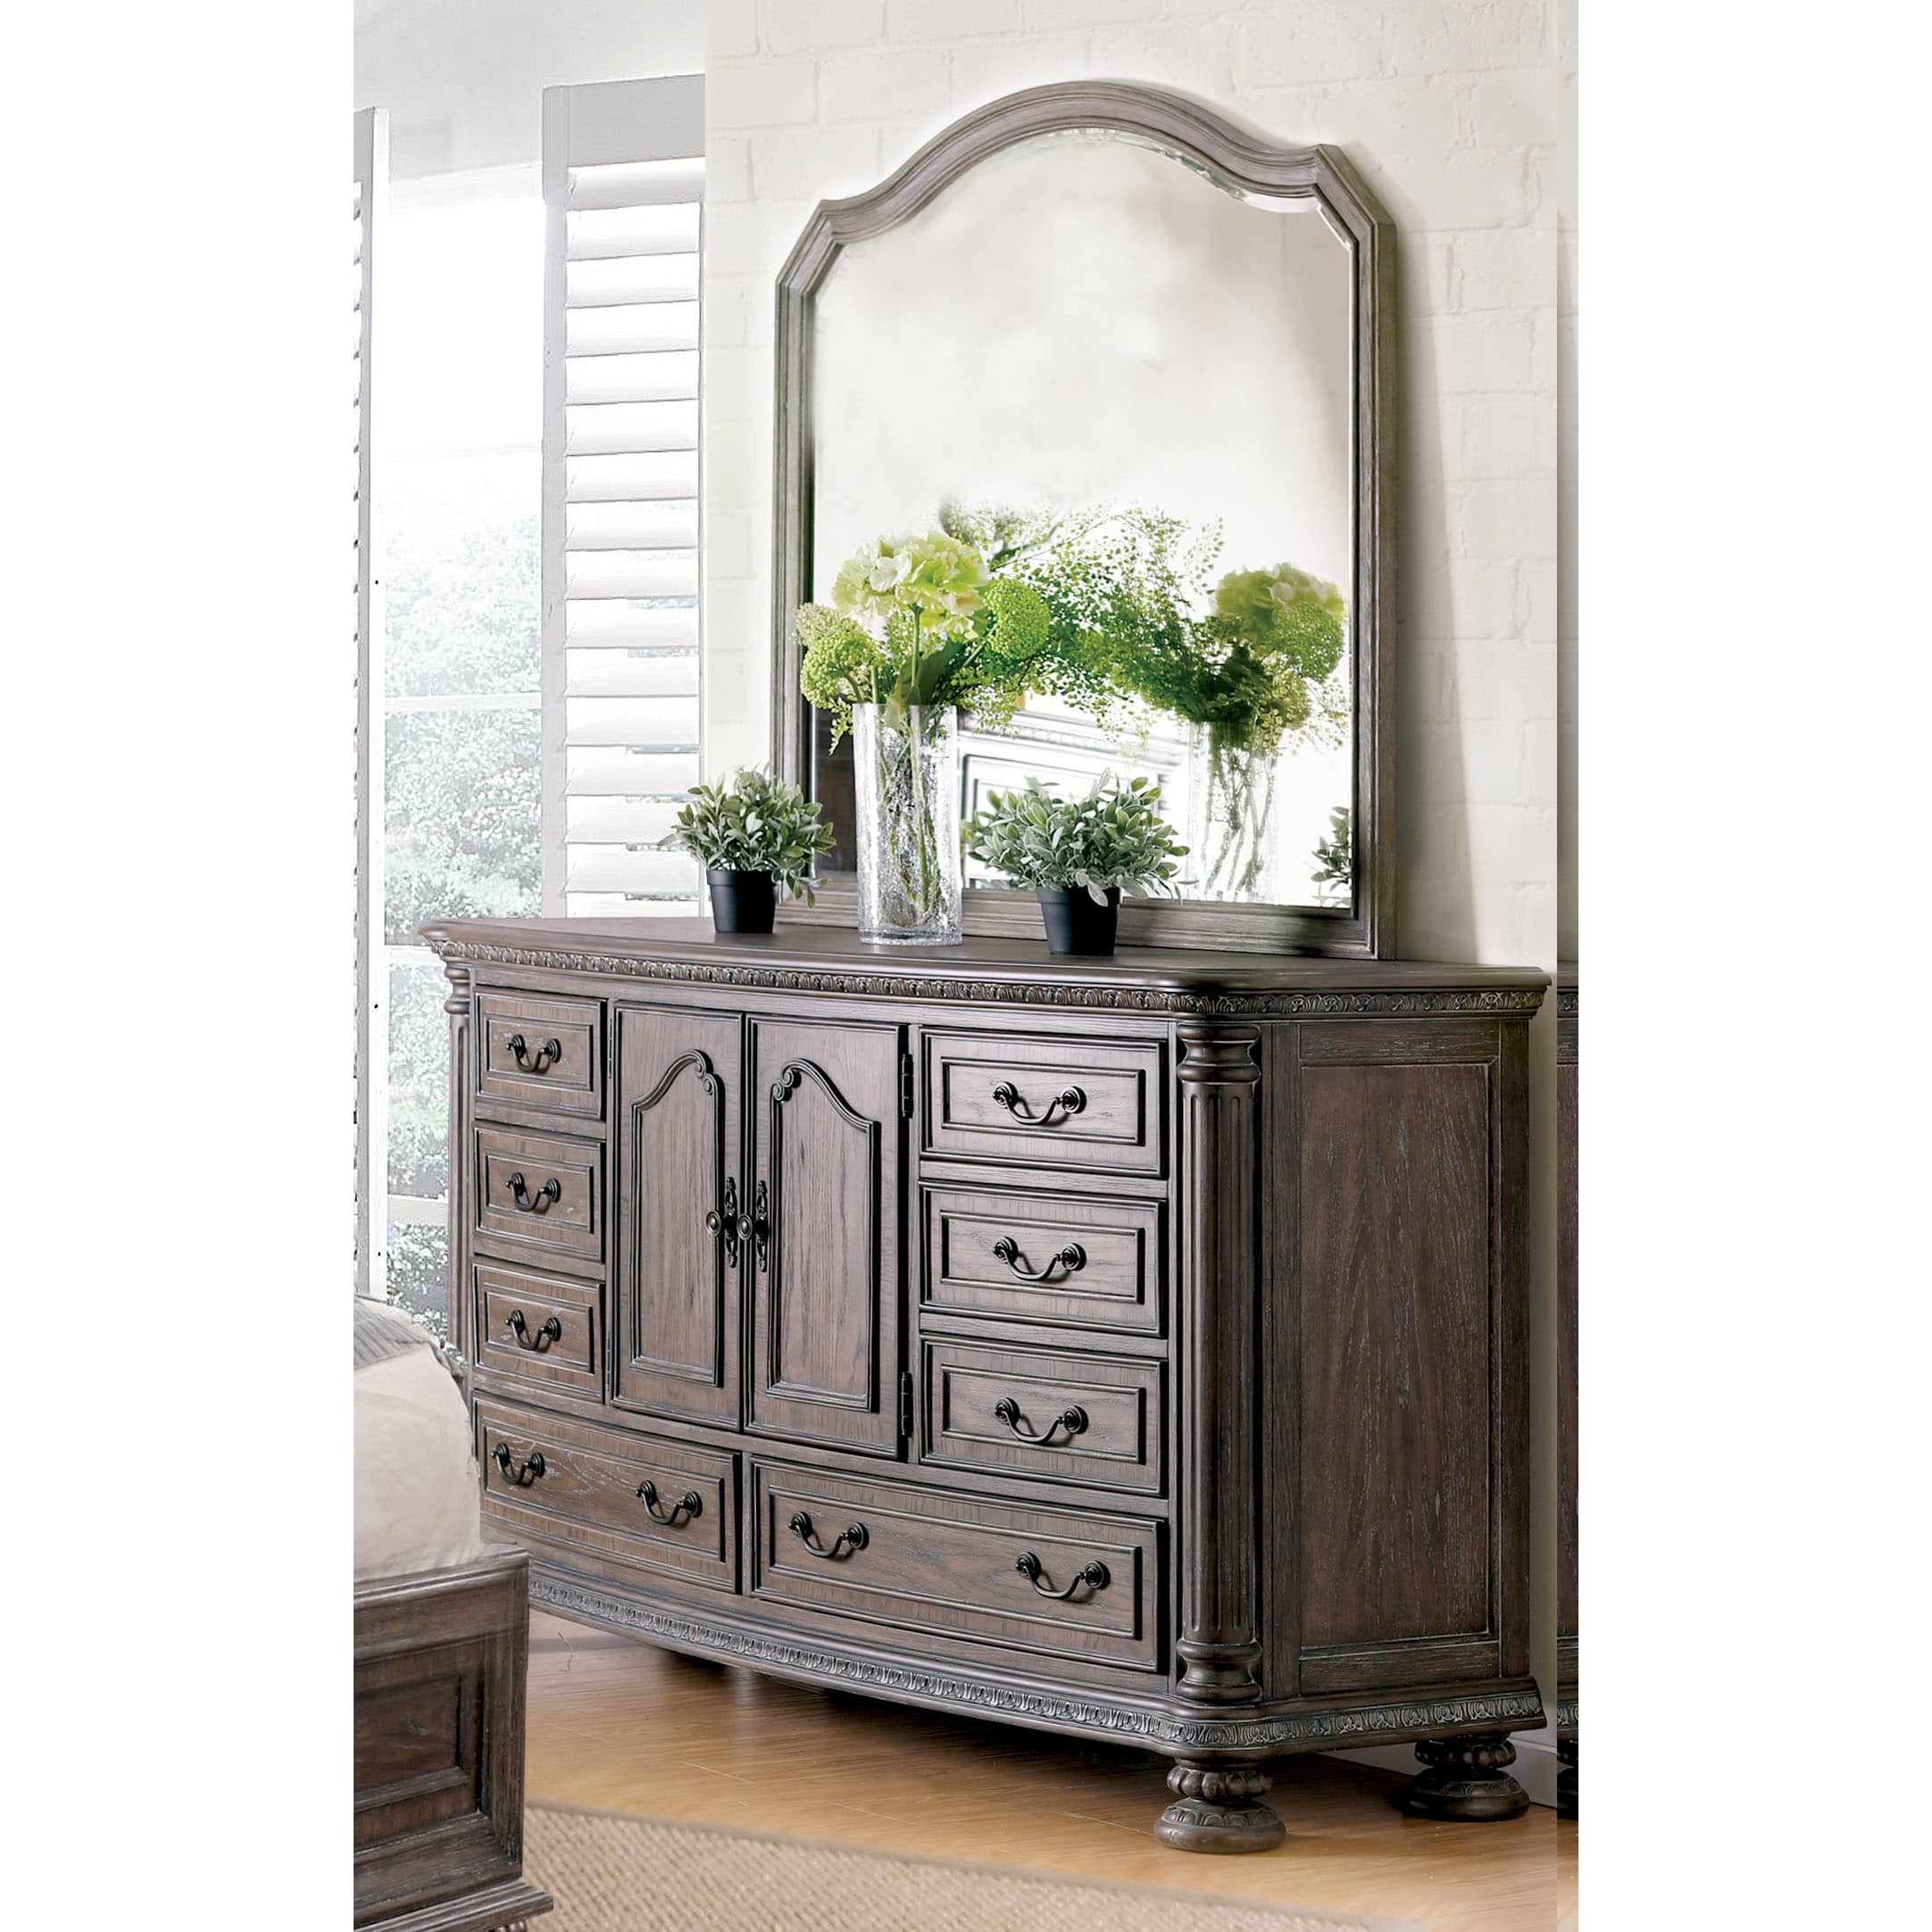 Furniture of America  Brigette II Traditional 2-piece Shabby Rustic Dresser and Mirror Set